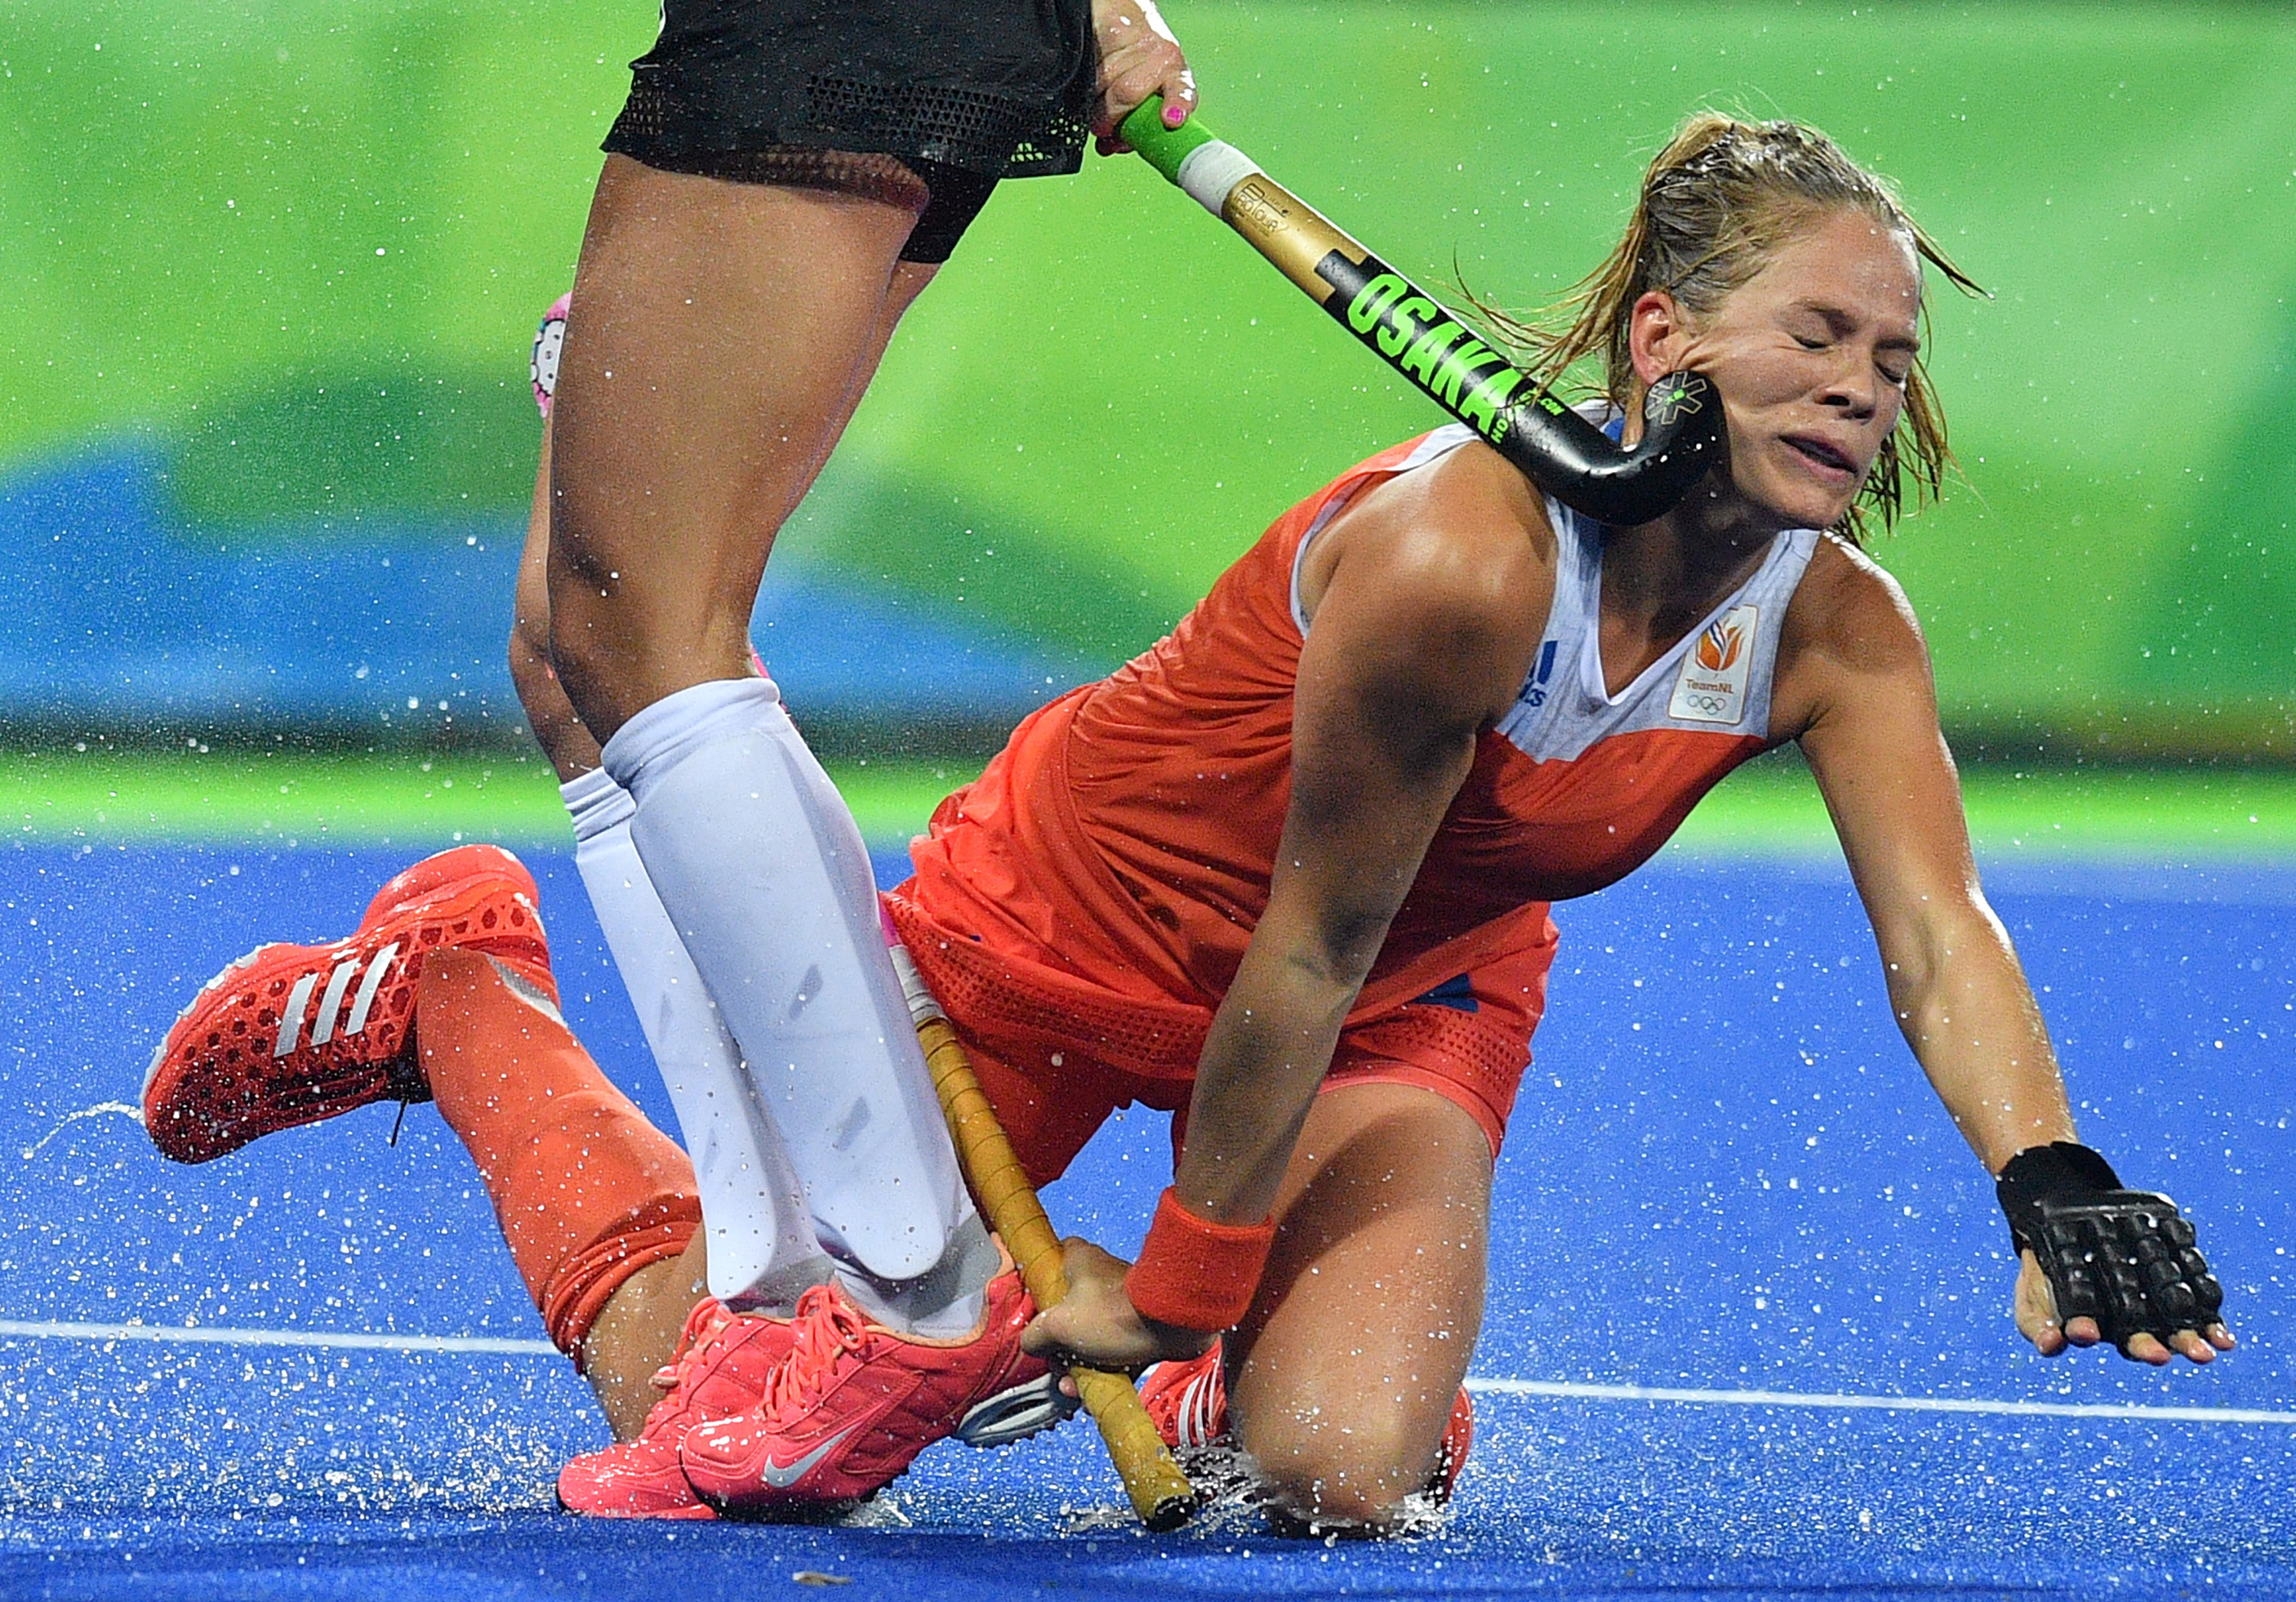 TOPSHOT - Netherlands' Kitty van Male (R) is hit on the face by Argentina's Agustina Habif during the women's quarterfinal field hockey Netherland vs Argentina match of the Rio 2016 Olympics Games at the Olympic Hockey Centre in Rio de Janeiro on August 15, 2016. / AFP / Carl DE SOUZA (Photo credit should read CARL DE SOUZA/AFP/Getty Images)